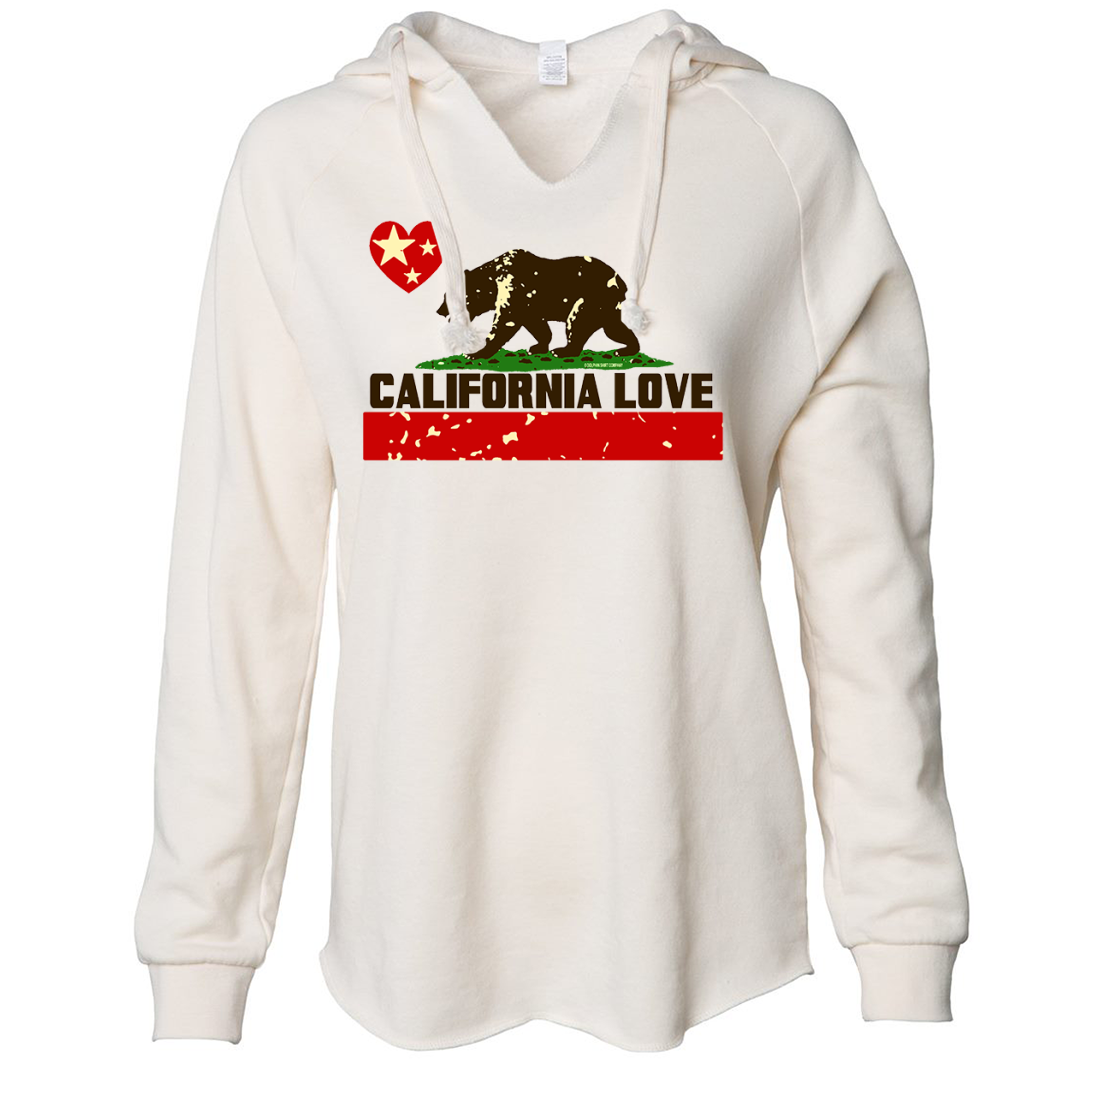 California Love Women's Soft Hooded Pullover